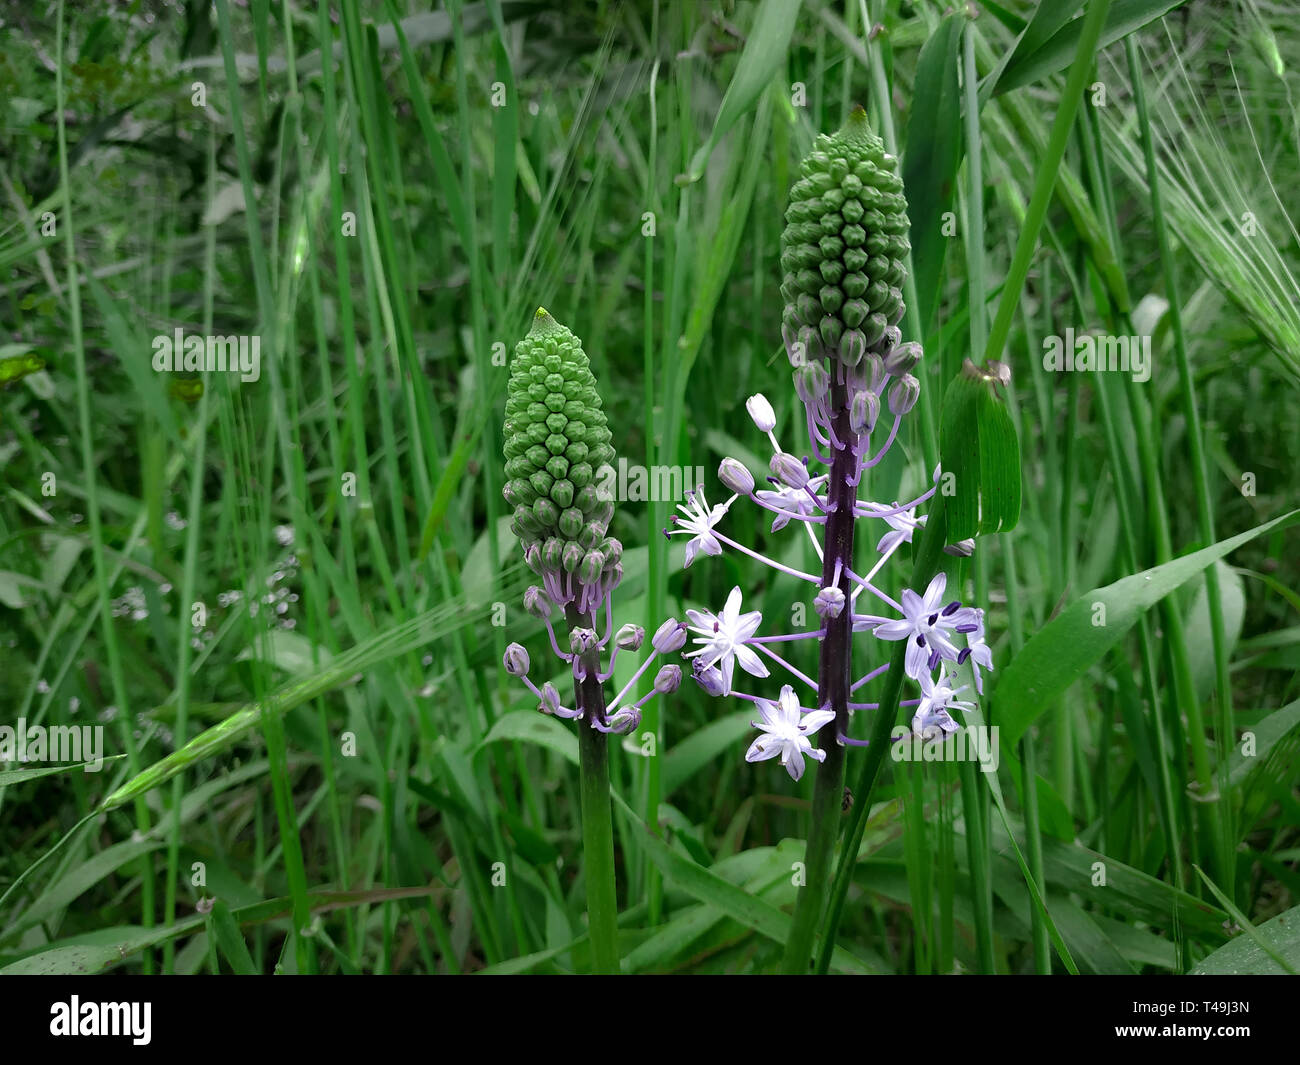 Hyacinth Squill light purple blooming flowers. Green grass landscape background. Wildflower nature field in Israel hights. Sunny weather, forest plant Stock Photo